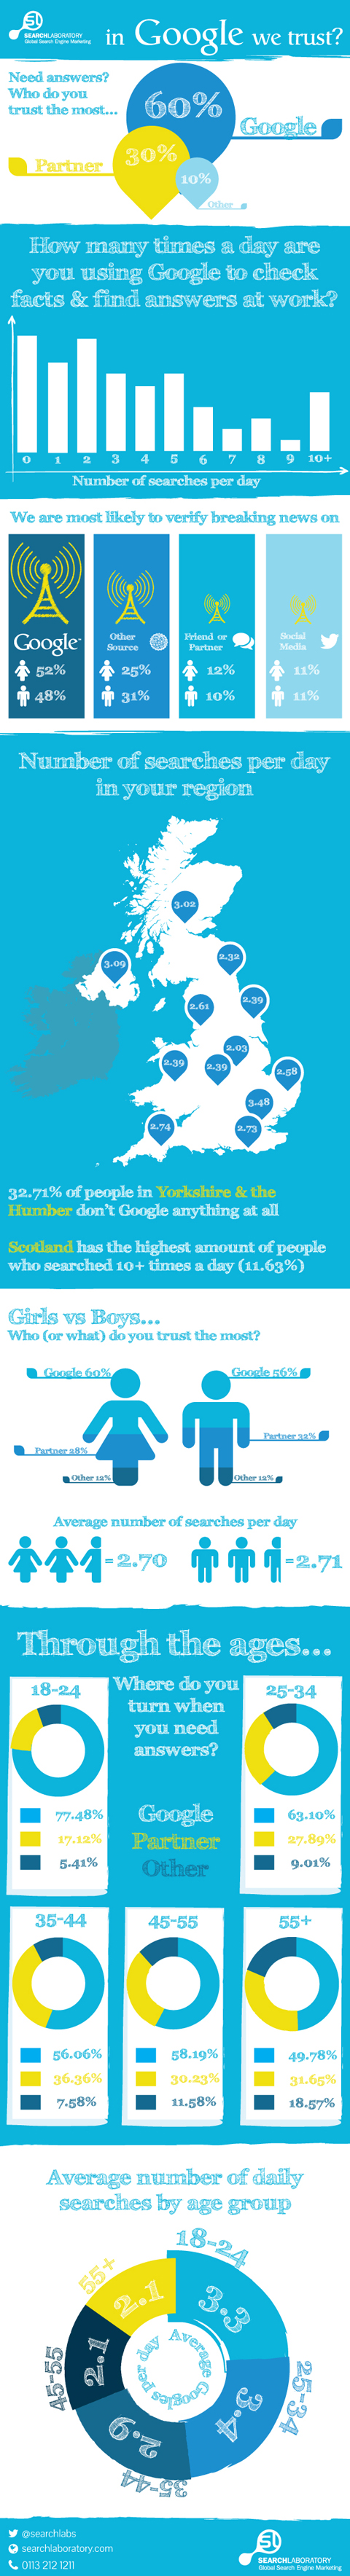 News Shopper: Google trust infographic